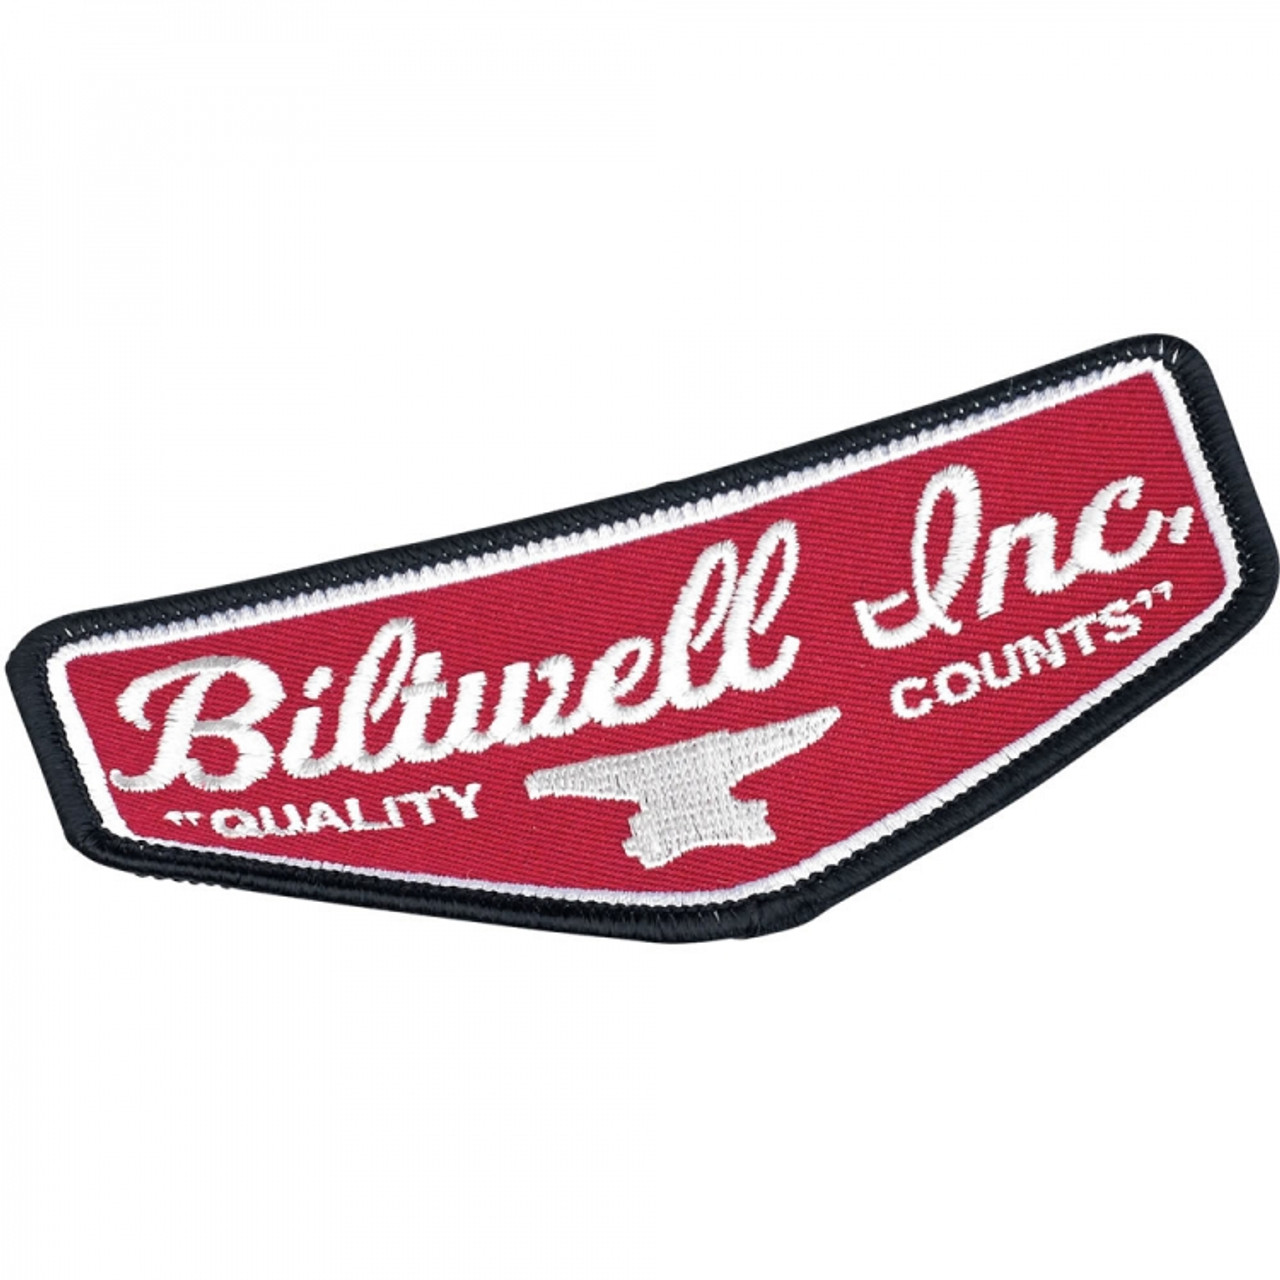 69fc4da1 Biltwell Black/Red/White Shield Motorcycle Patch - Get Lowered Cycles